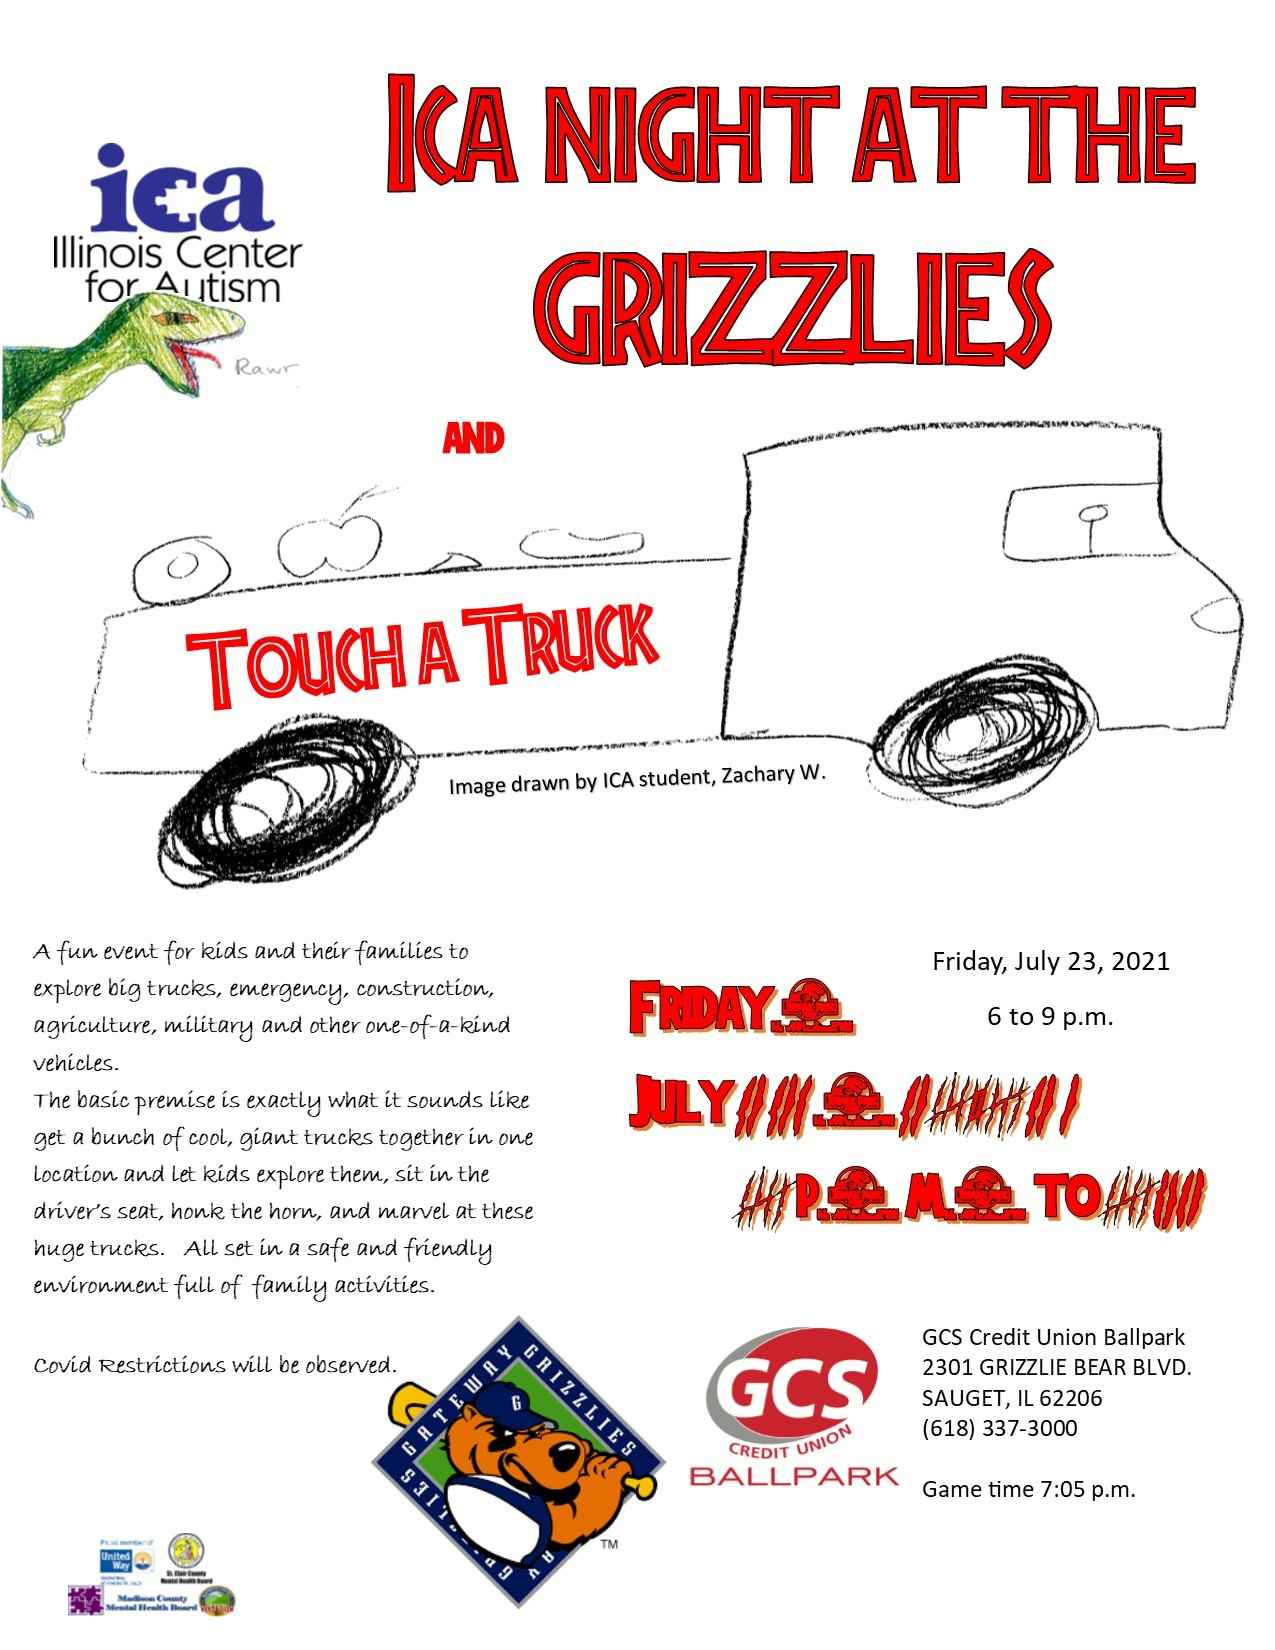 2021 Touch a Truck Sponsorship Opportunities image